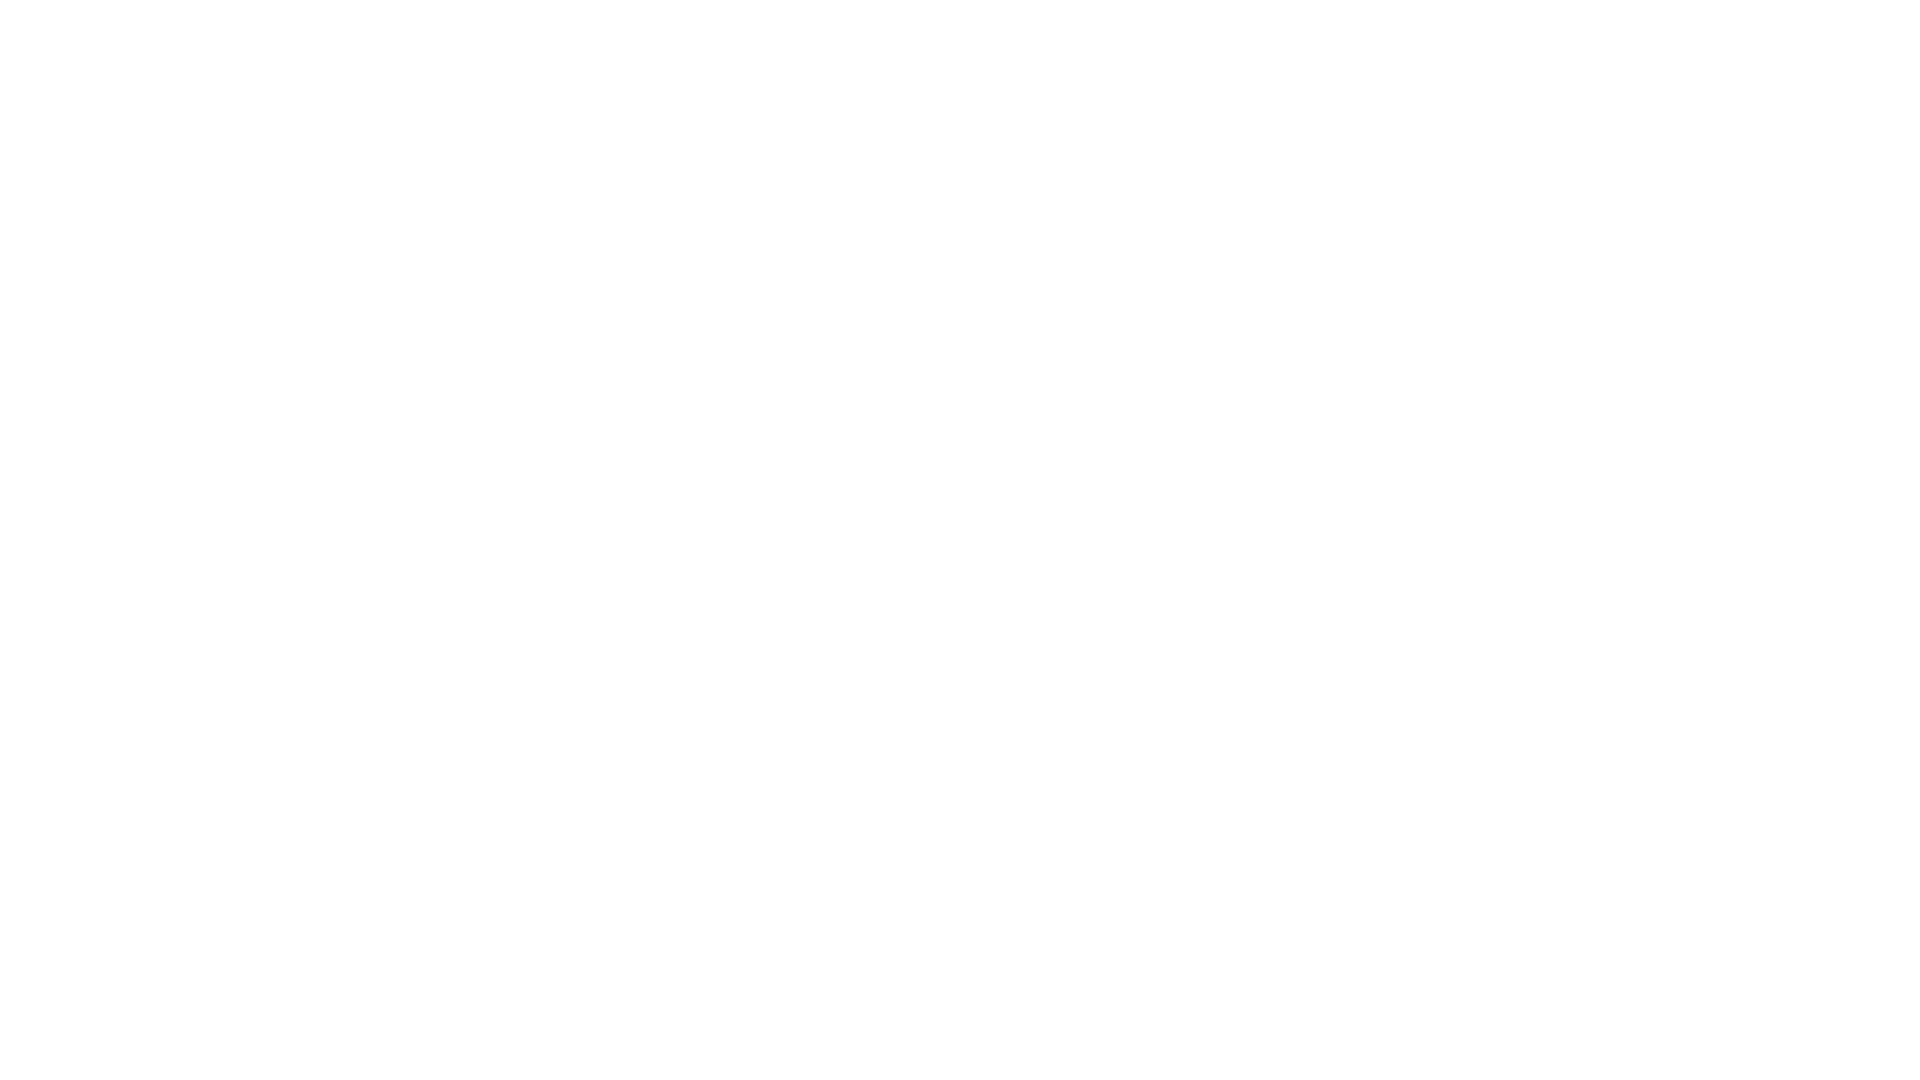 Be Balanced.  Work, play, rest, learn, love ... it all matters.